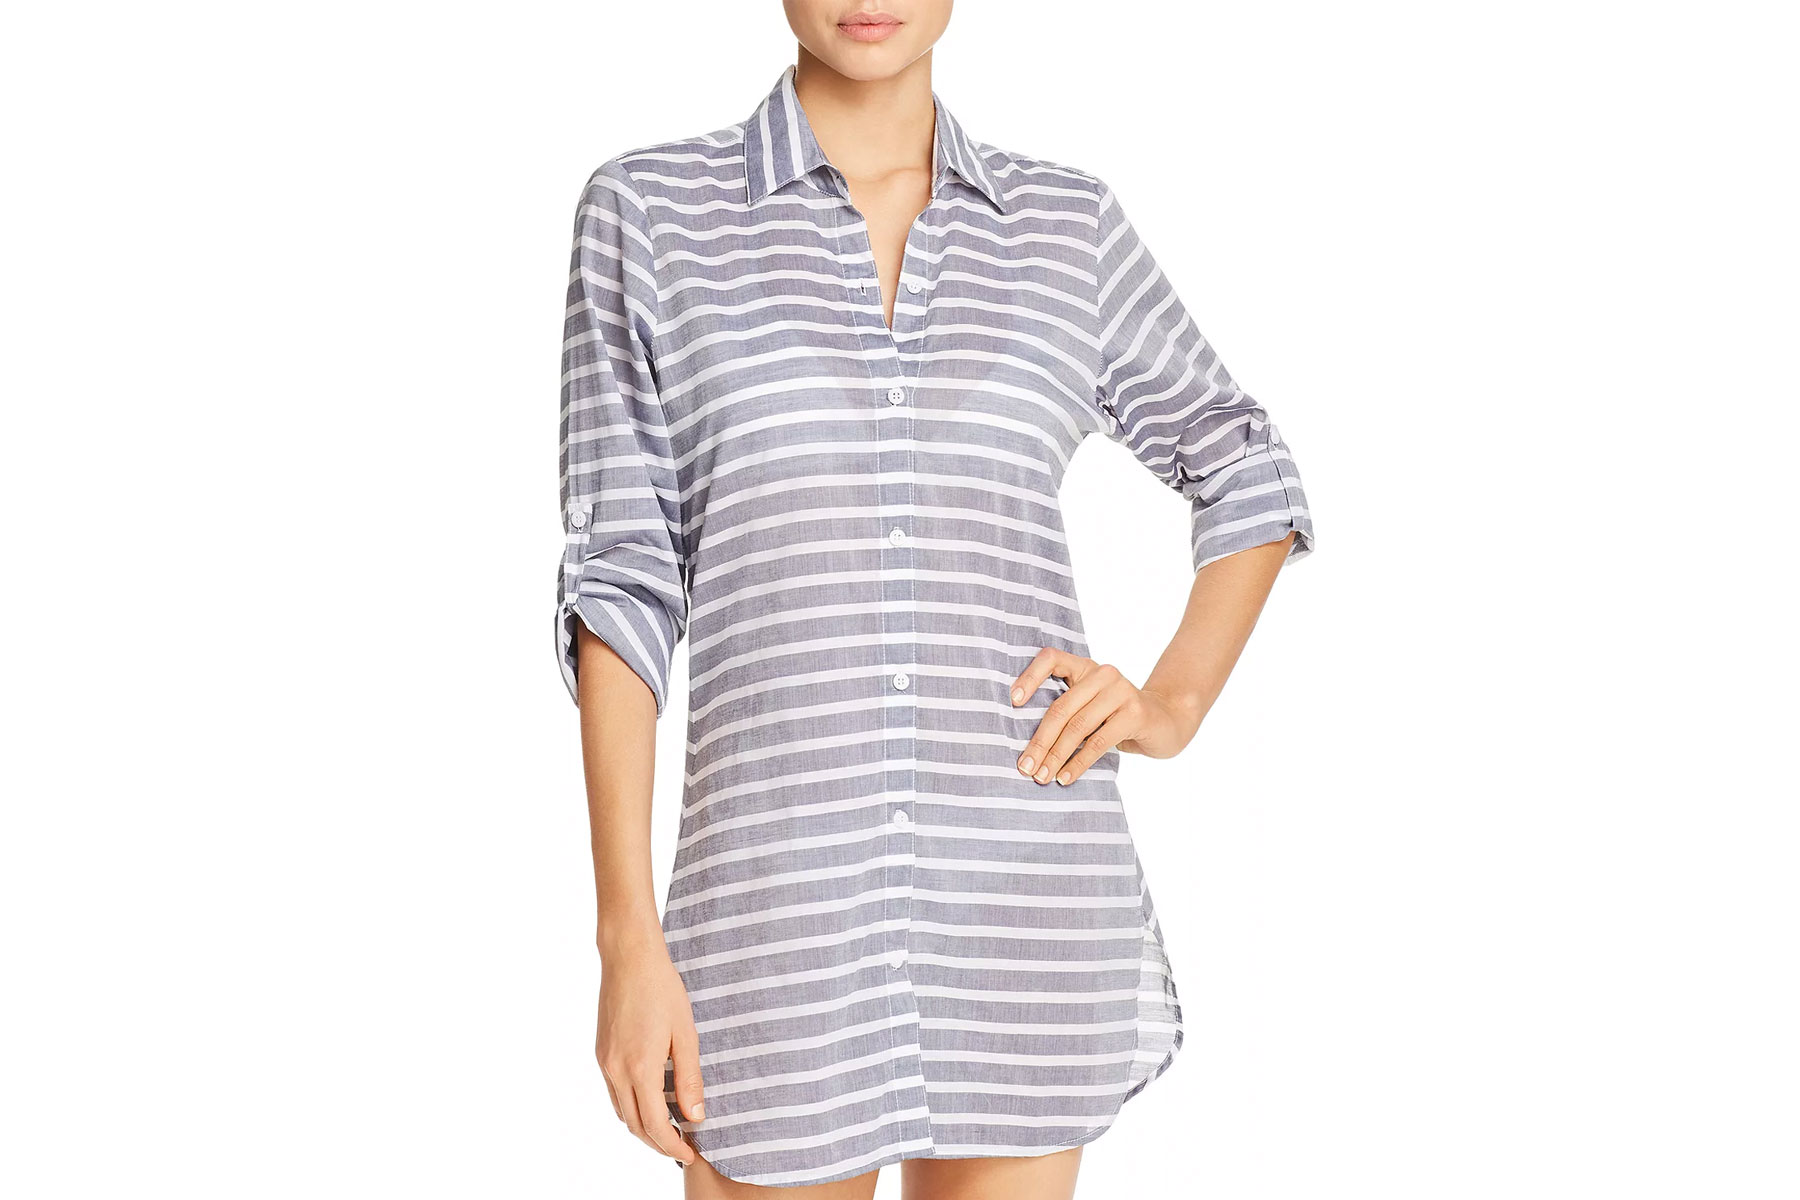 Blue and white striped shirtdress cover up